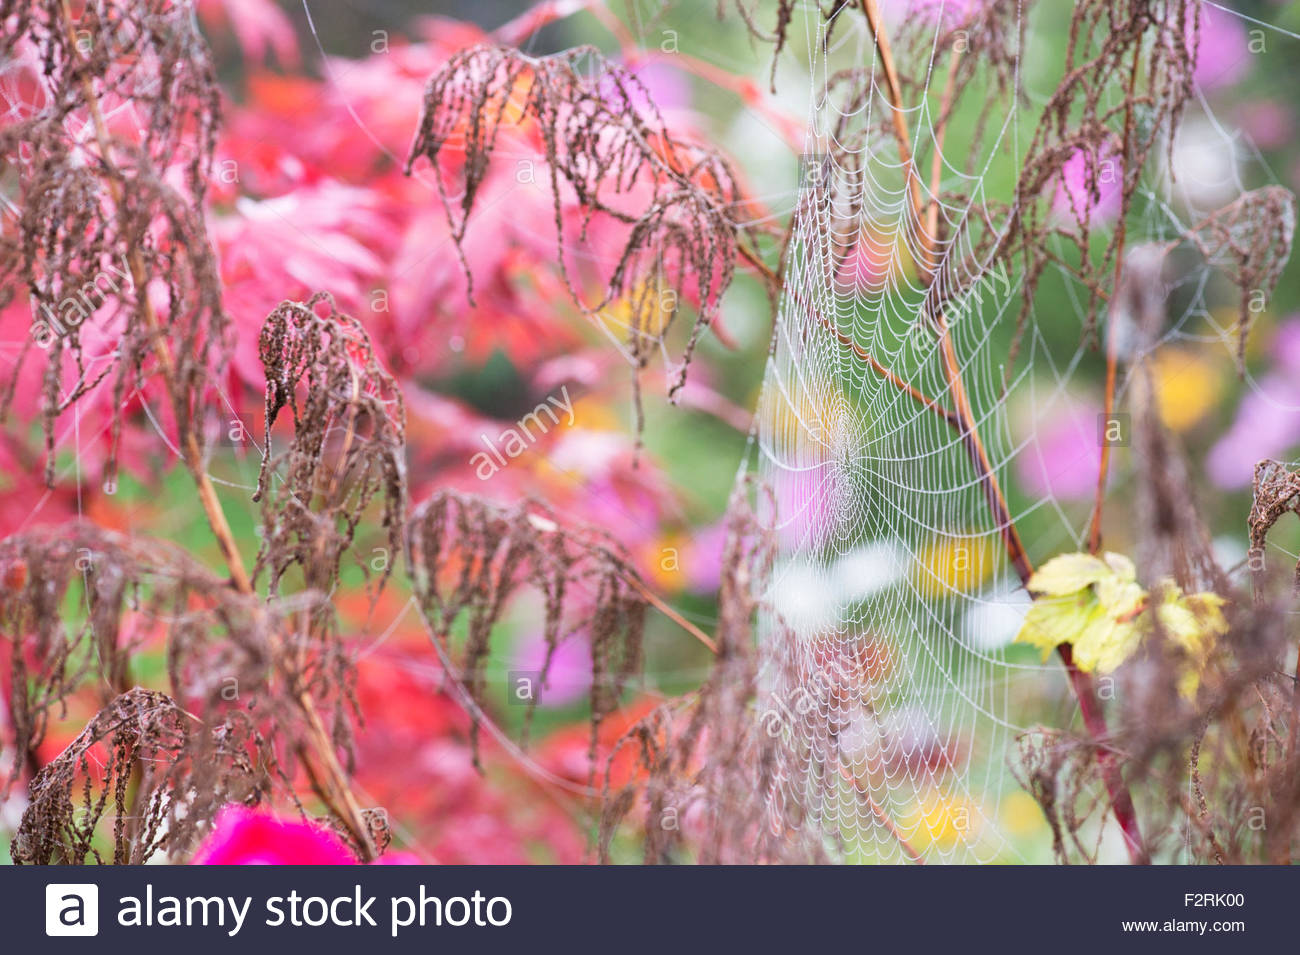 Mist covered Spiders webs in an english garden in autumn - Stock Image